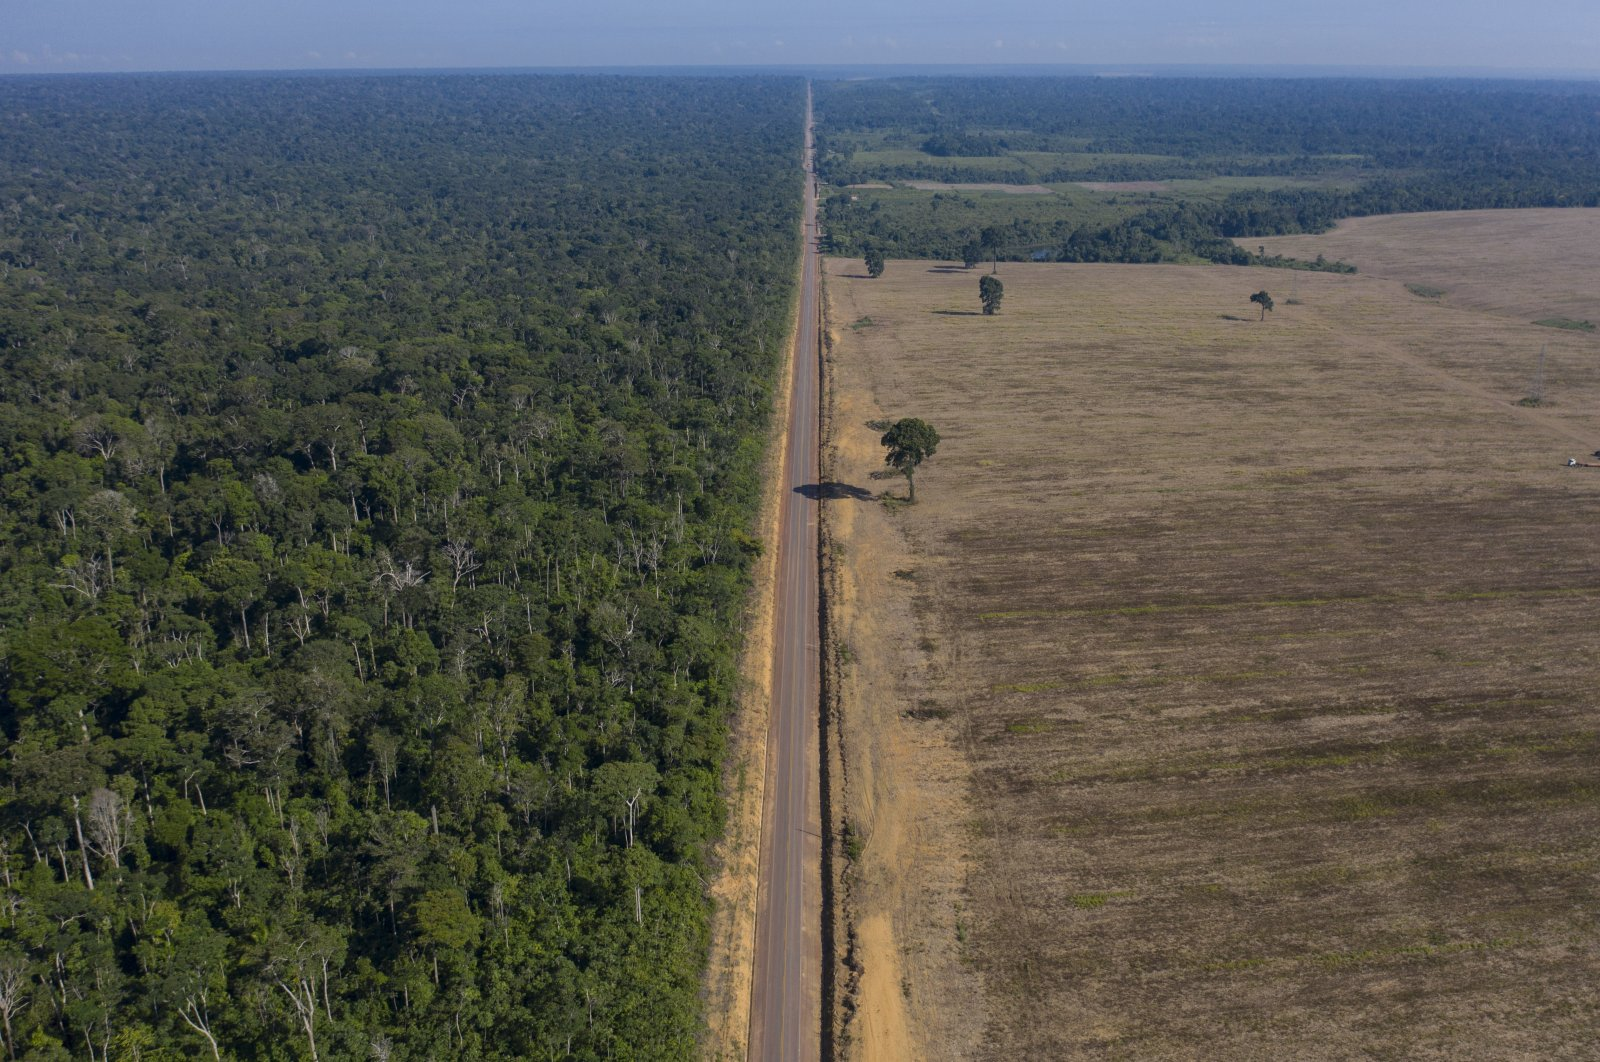 Highway BR-163 stretches between the Tapajos National Forest (L) and a soy field in Belterra, Para state, Brazil, Nov. 25, 2019. (AP File Photo)